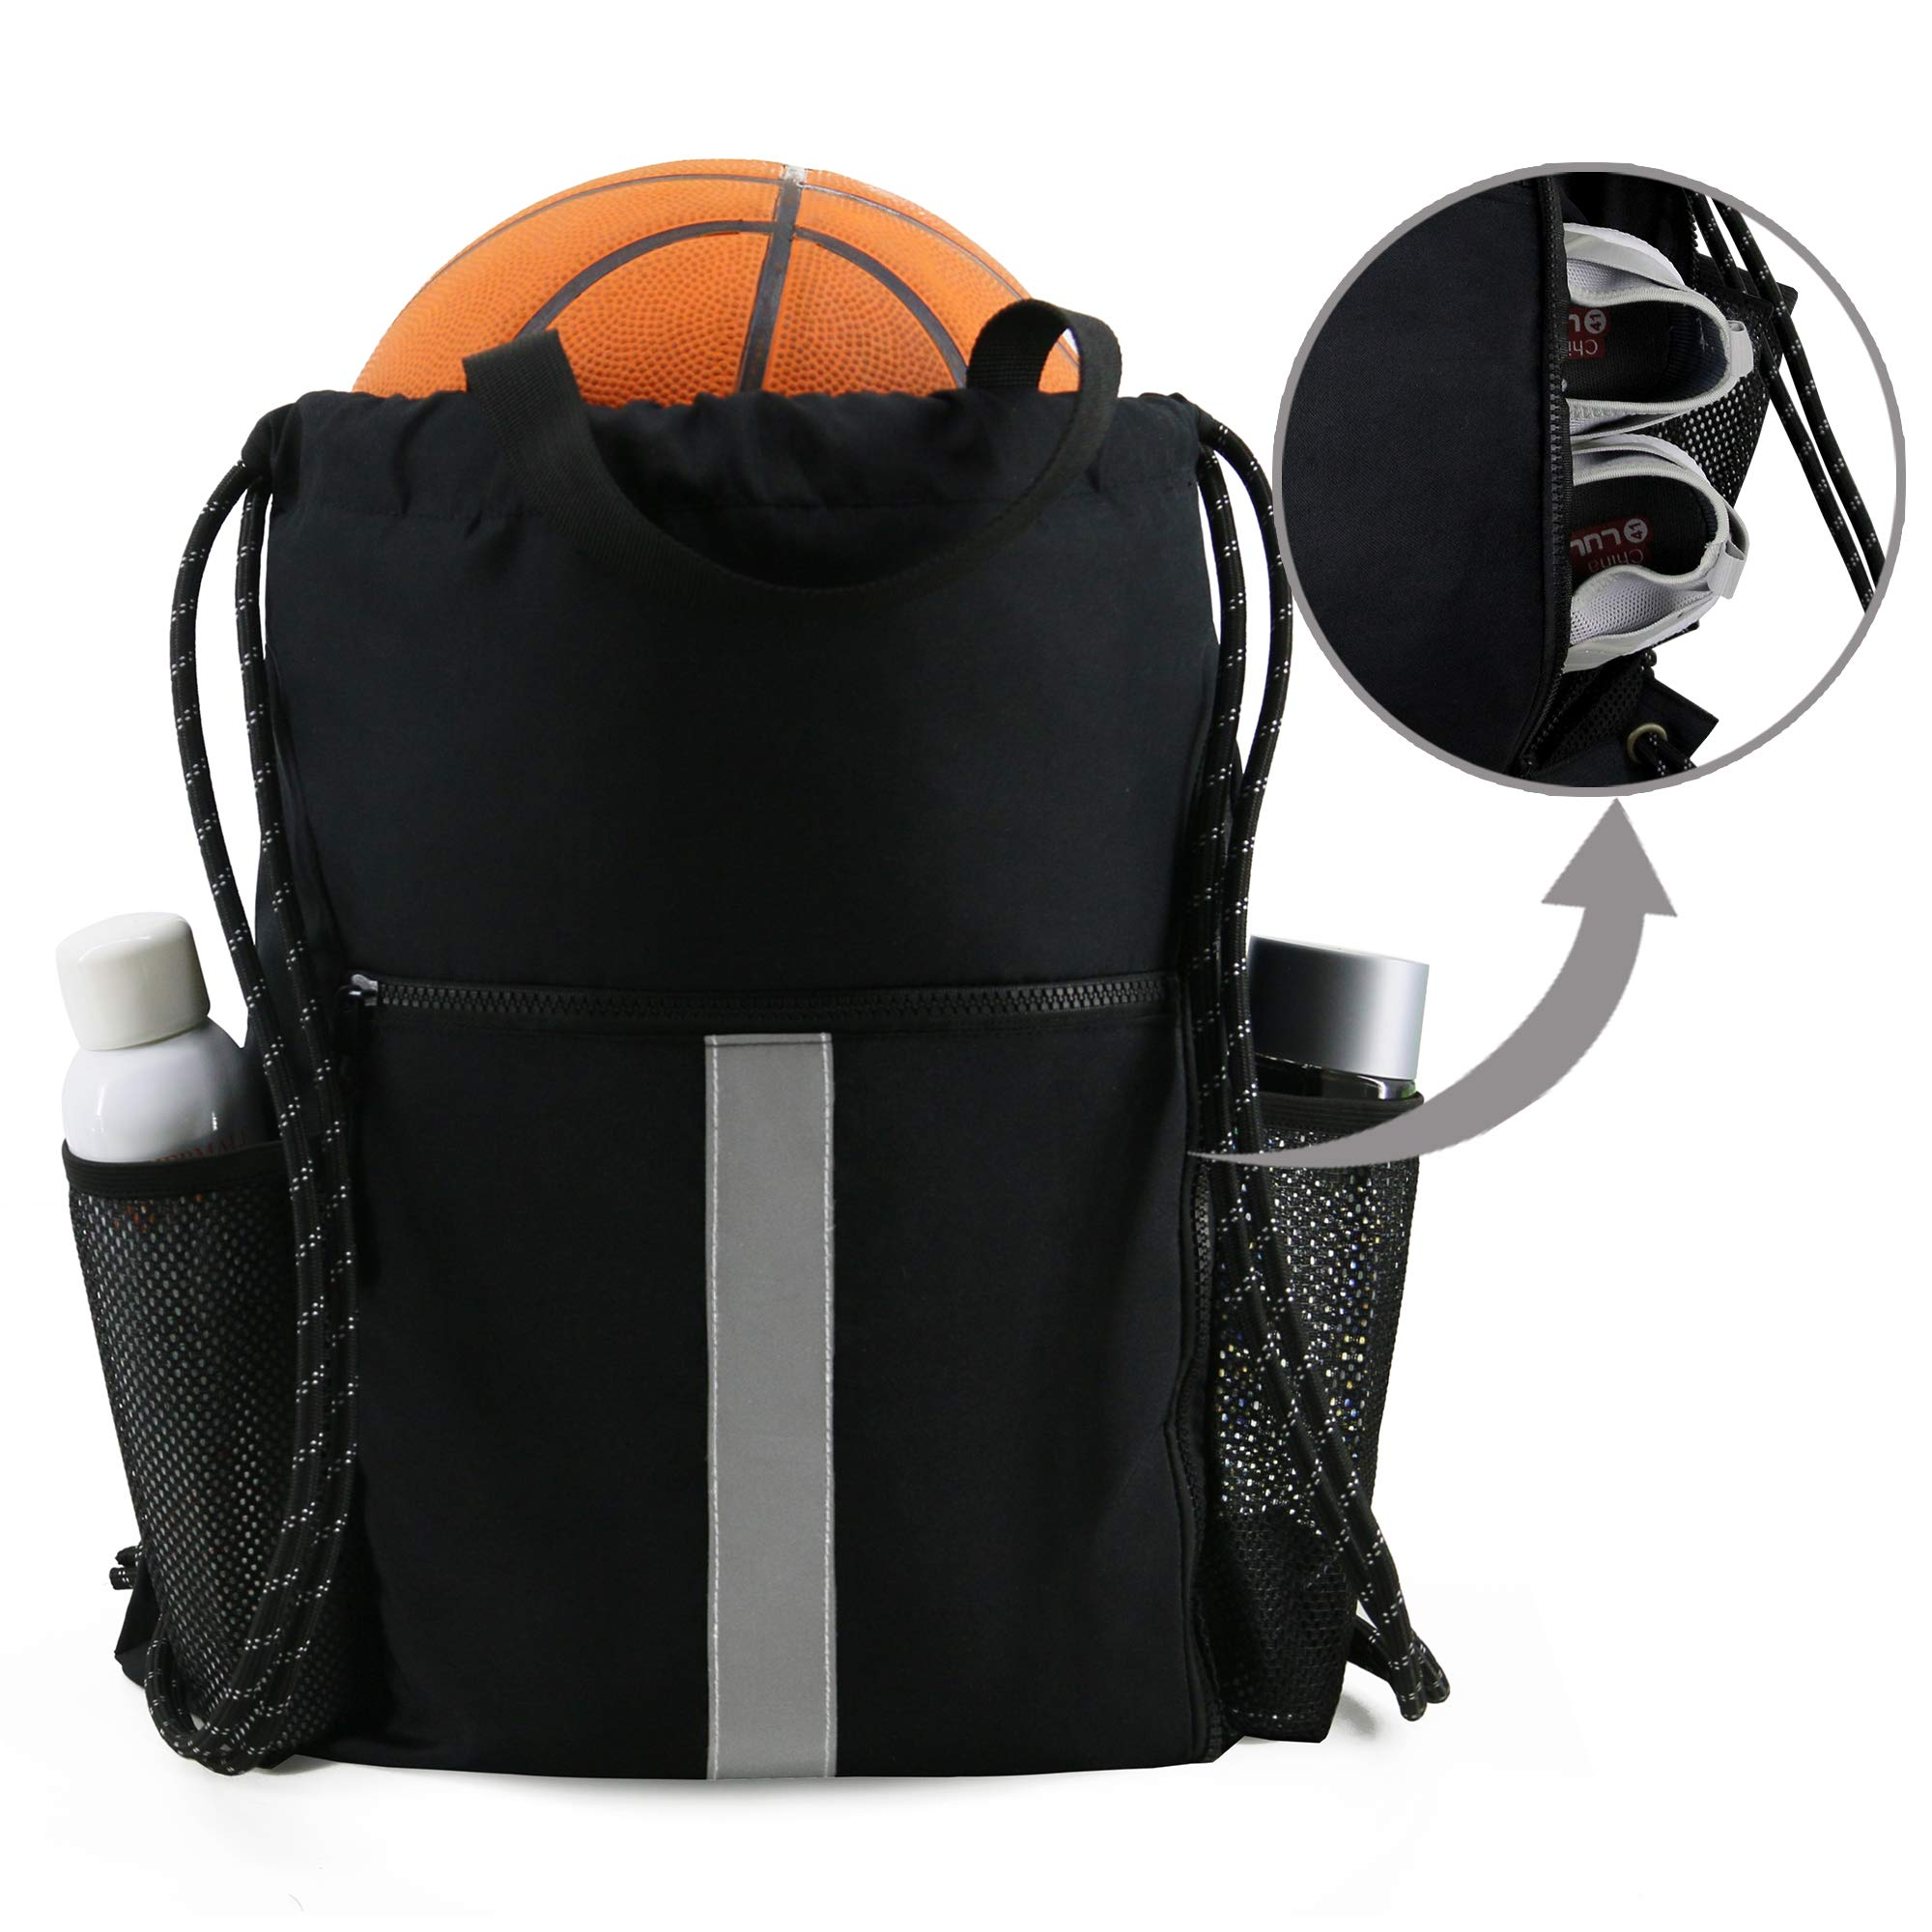 Gym-Drawstring-Bag-Backpack with Shoe Compartment and Two Water Bottle Holder for Men Women Large String Backpack Sports Bag Athletic Sackpack for School